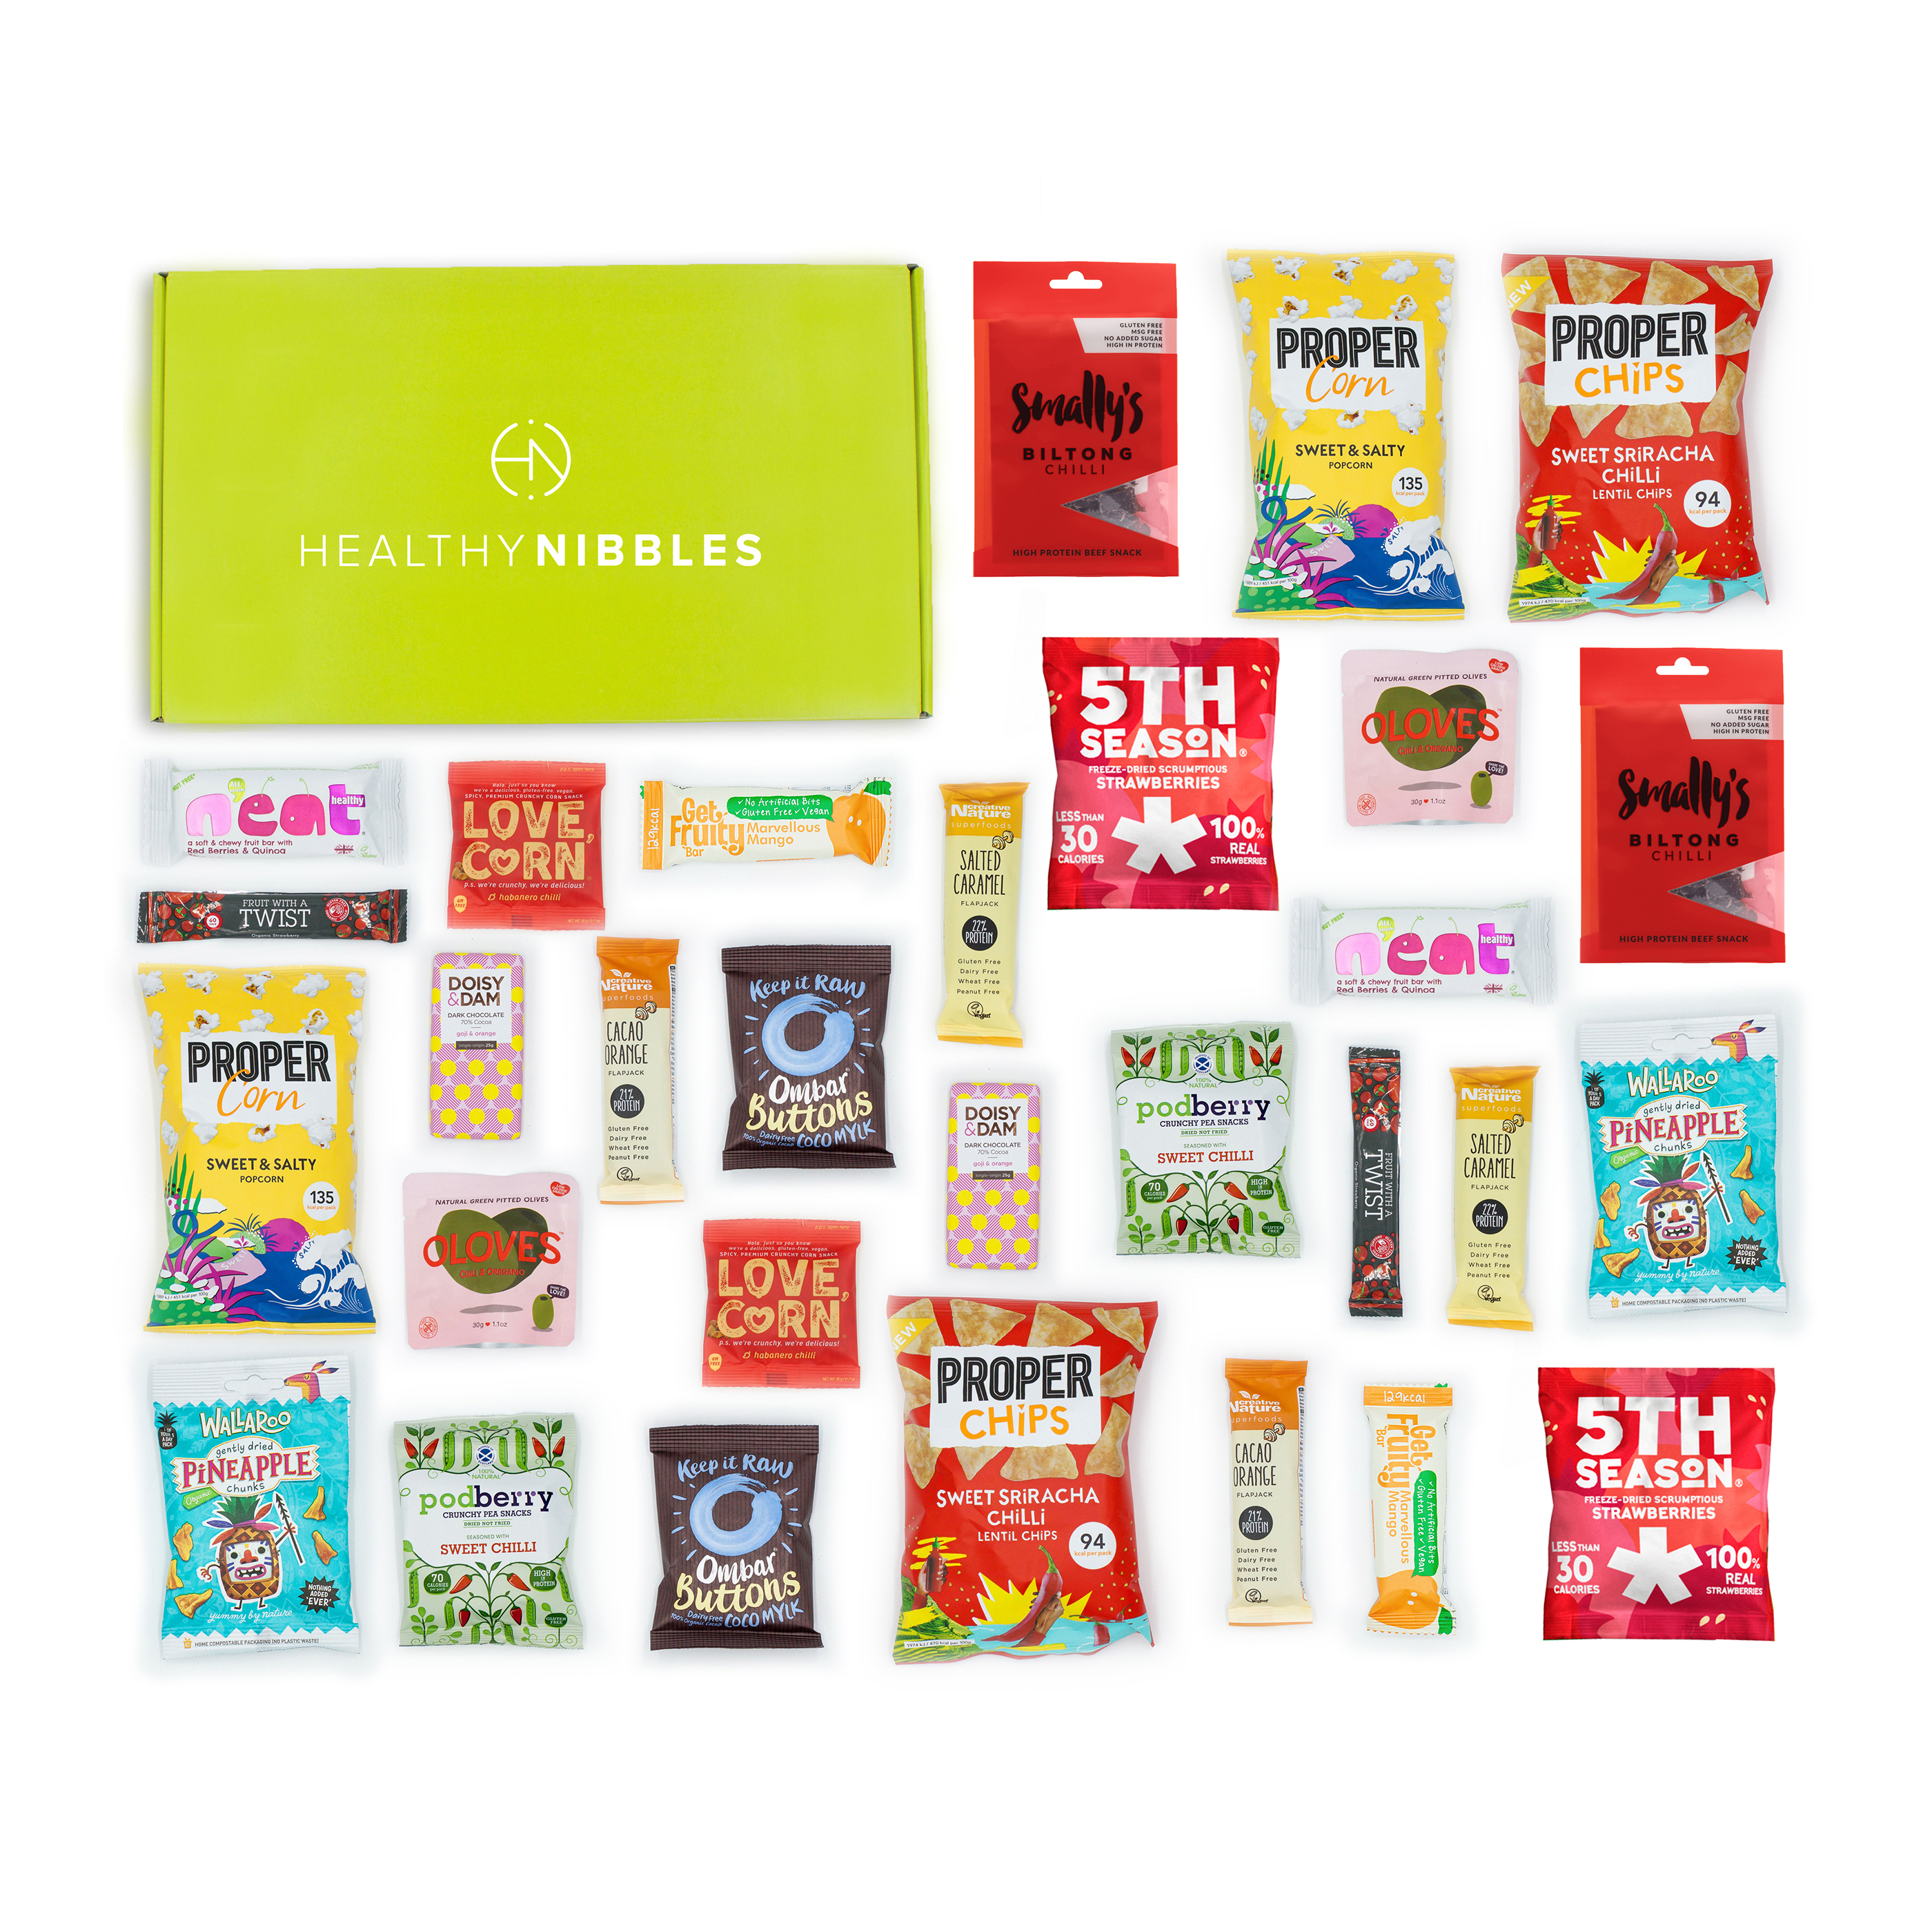 Limitless Healthy Nibbles Nut Free Snack 30 Piece Office Box Ref NutFree30 *Up to 2-3 Day Leadtime*